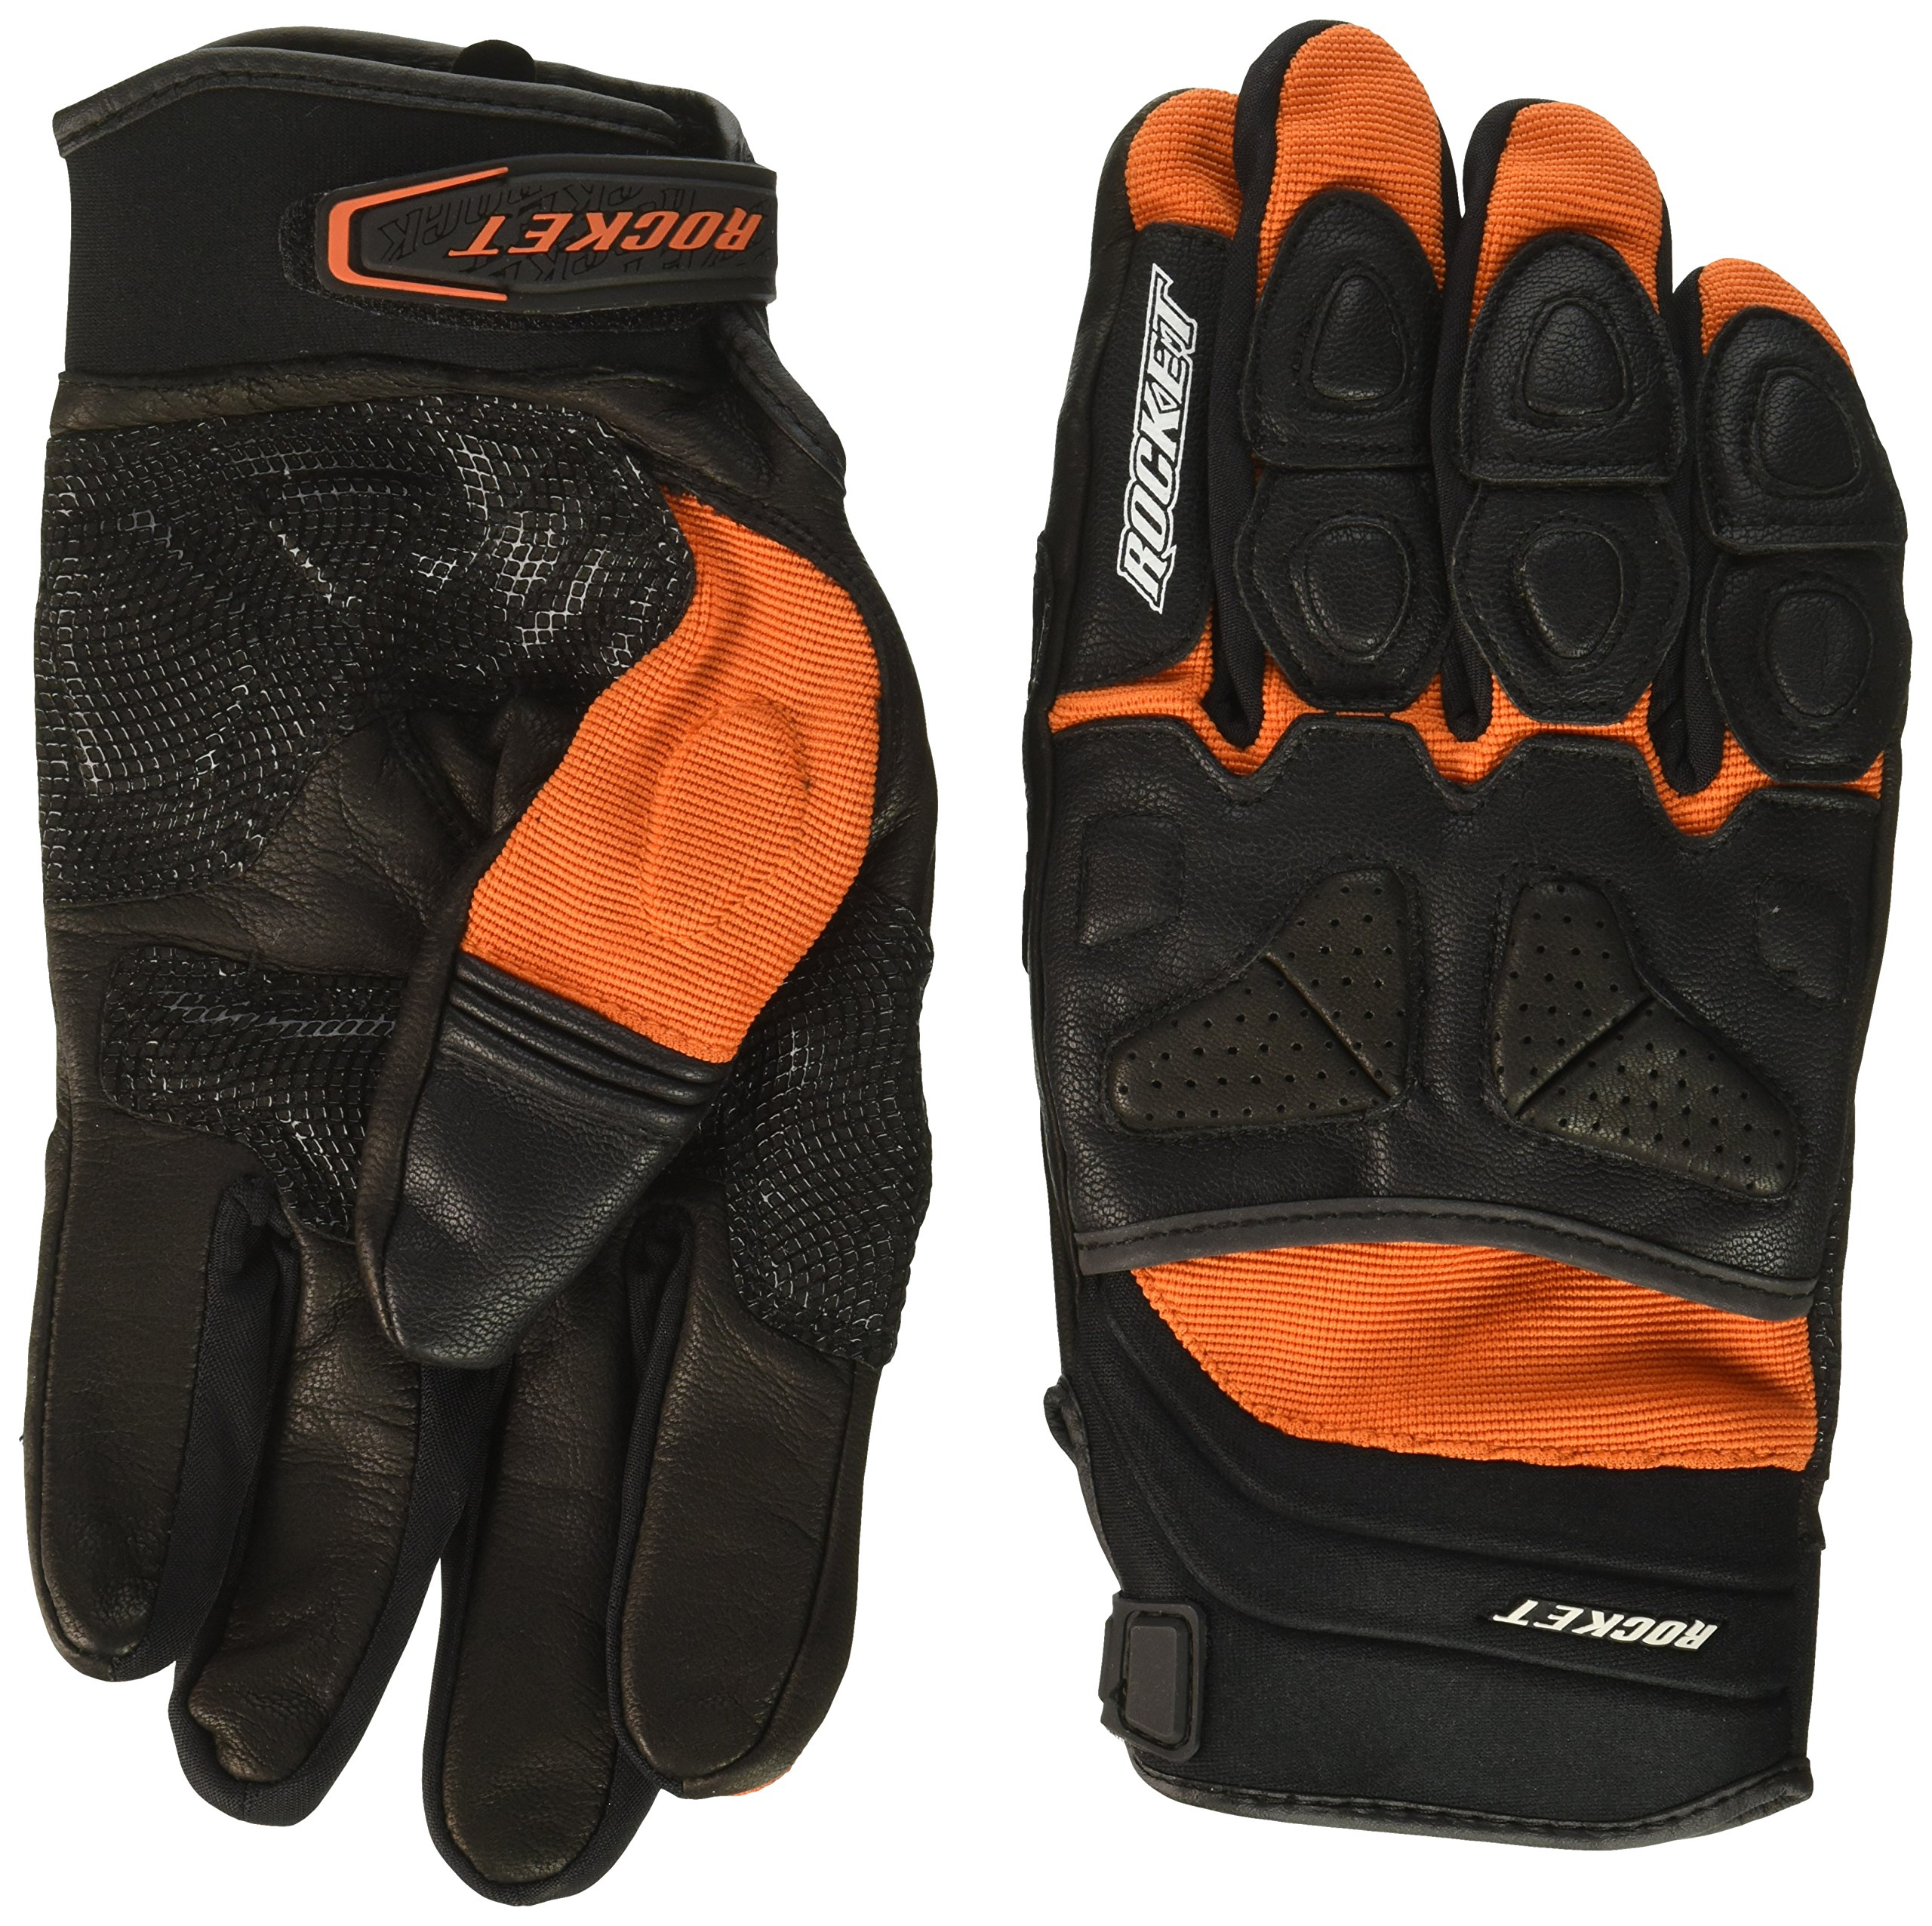 Joe Rocket Men's Atomic X Motorcycle Gloves (Orange/Black, X-Large)